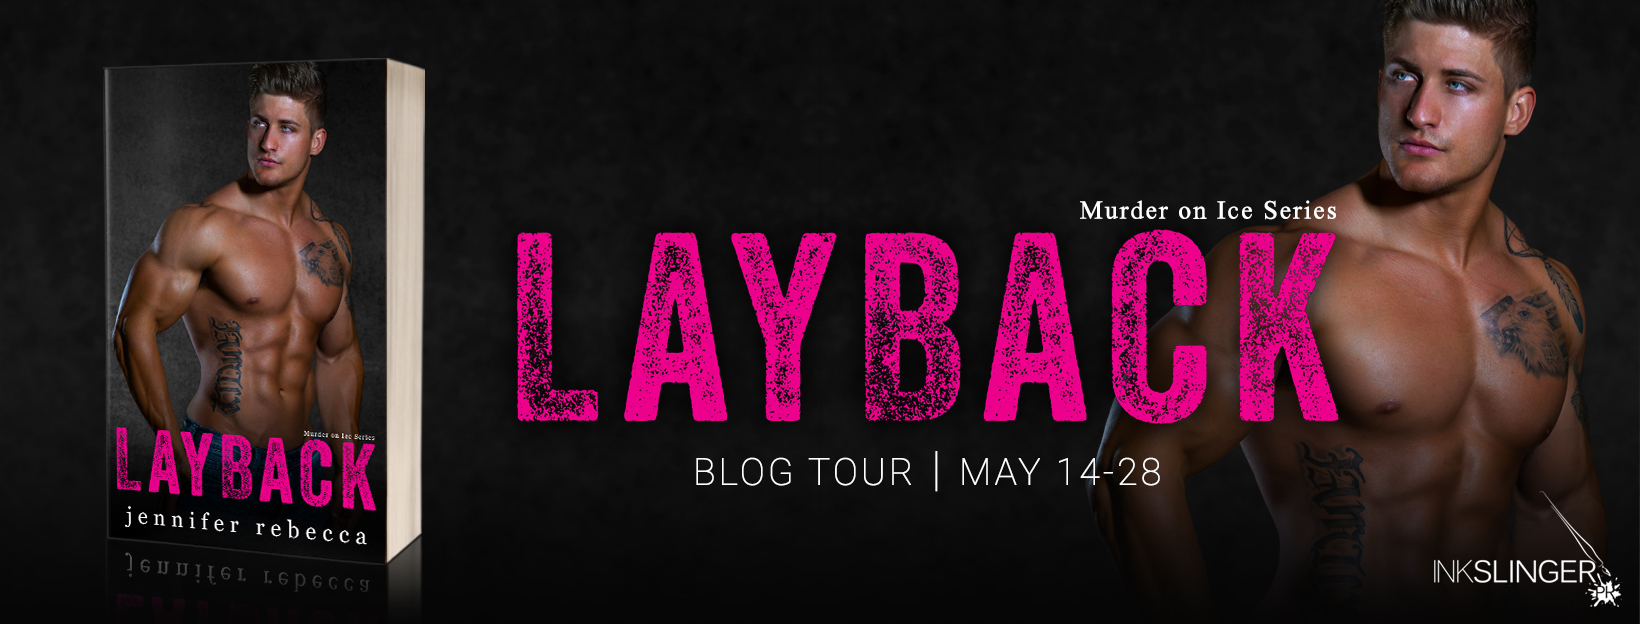 Layback_blogtour